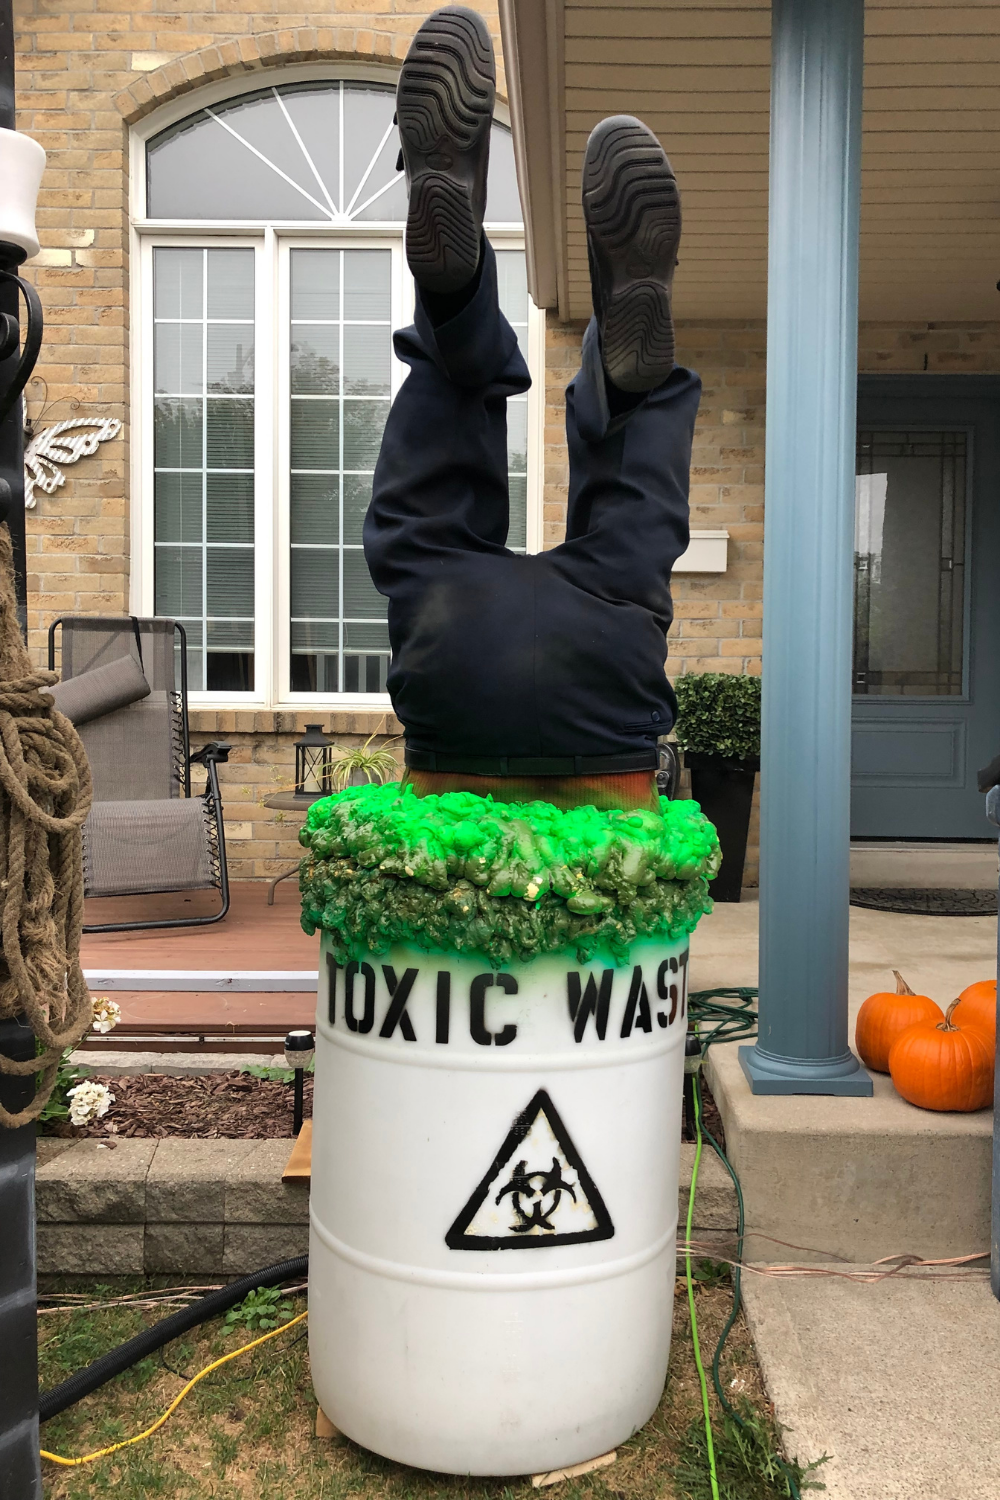 Legs stick out from a bin marked Toxic Waste